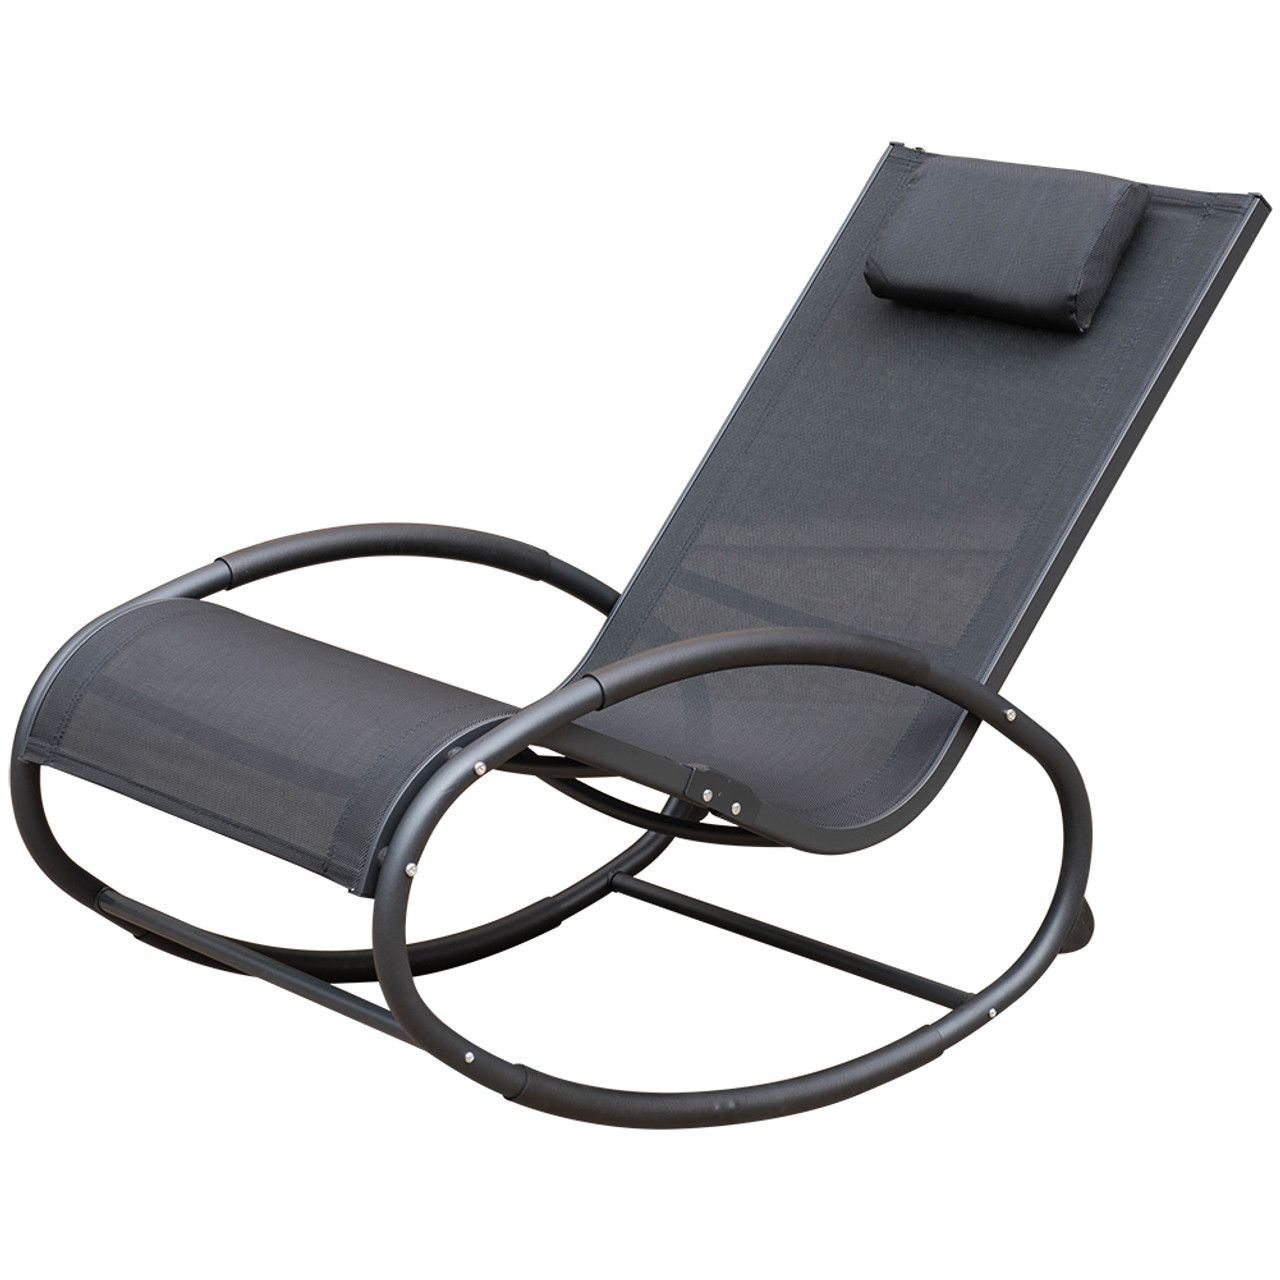 patio garden pool zero gravity orbital rocking lounge chair with aluninum frame and pillow capacity - Zero Gravity Lounge Chair